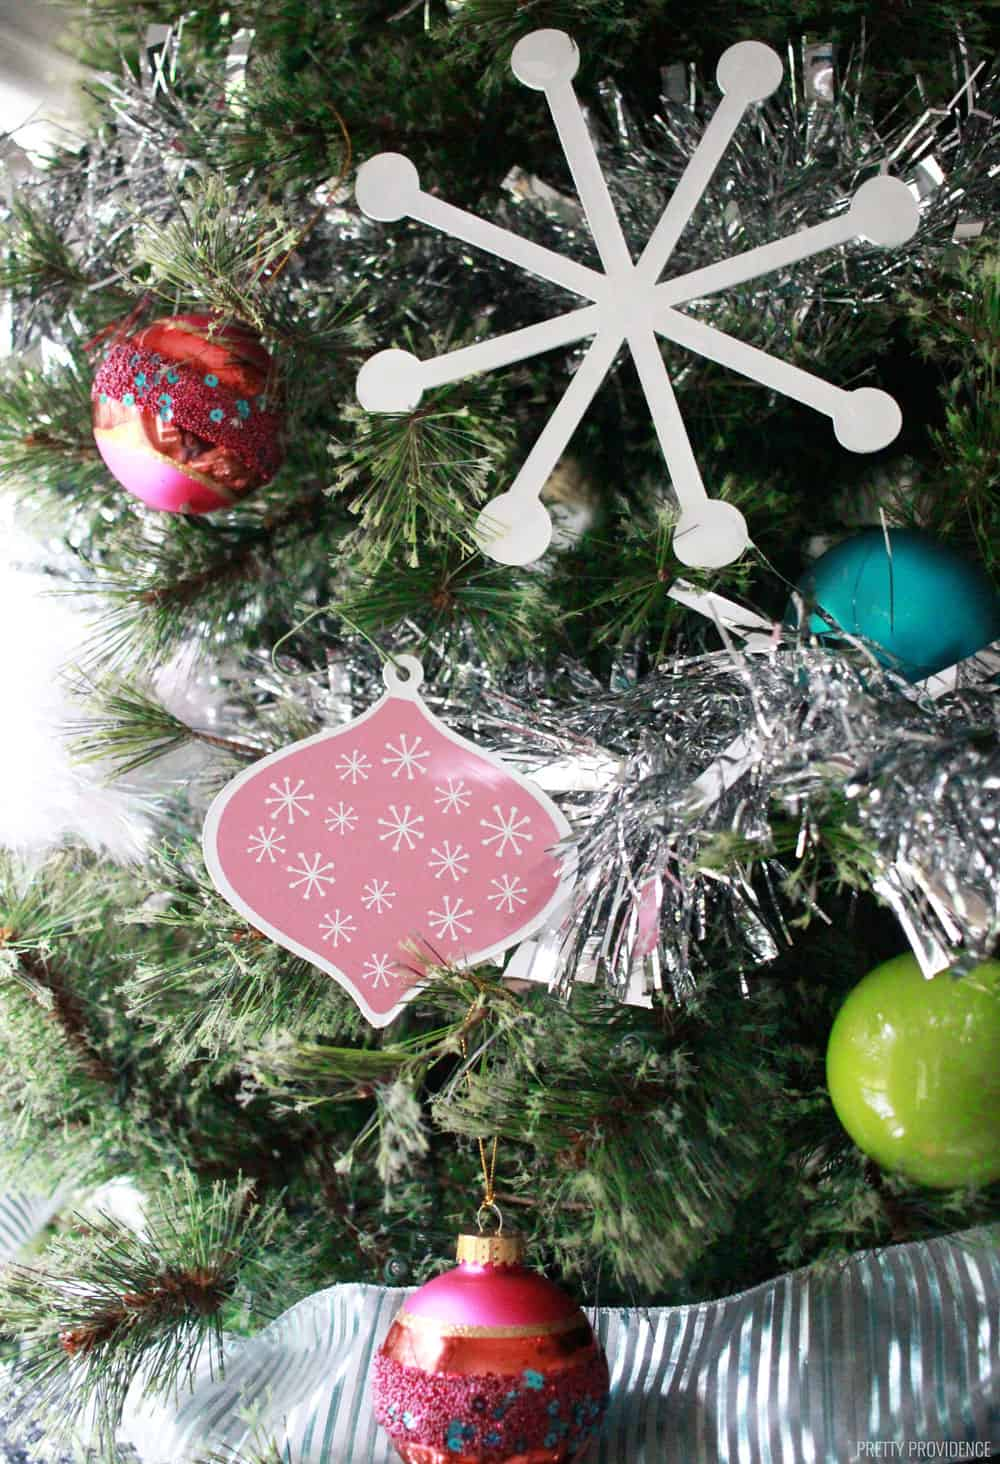 Diy Christmas Ornaments Diy Christmas Ornaments Holiday Decorations With Cricut